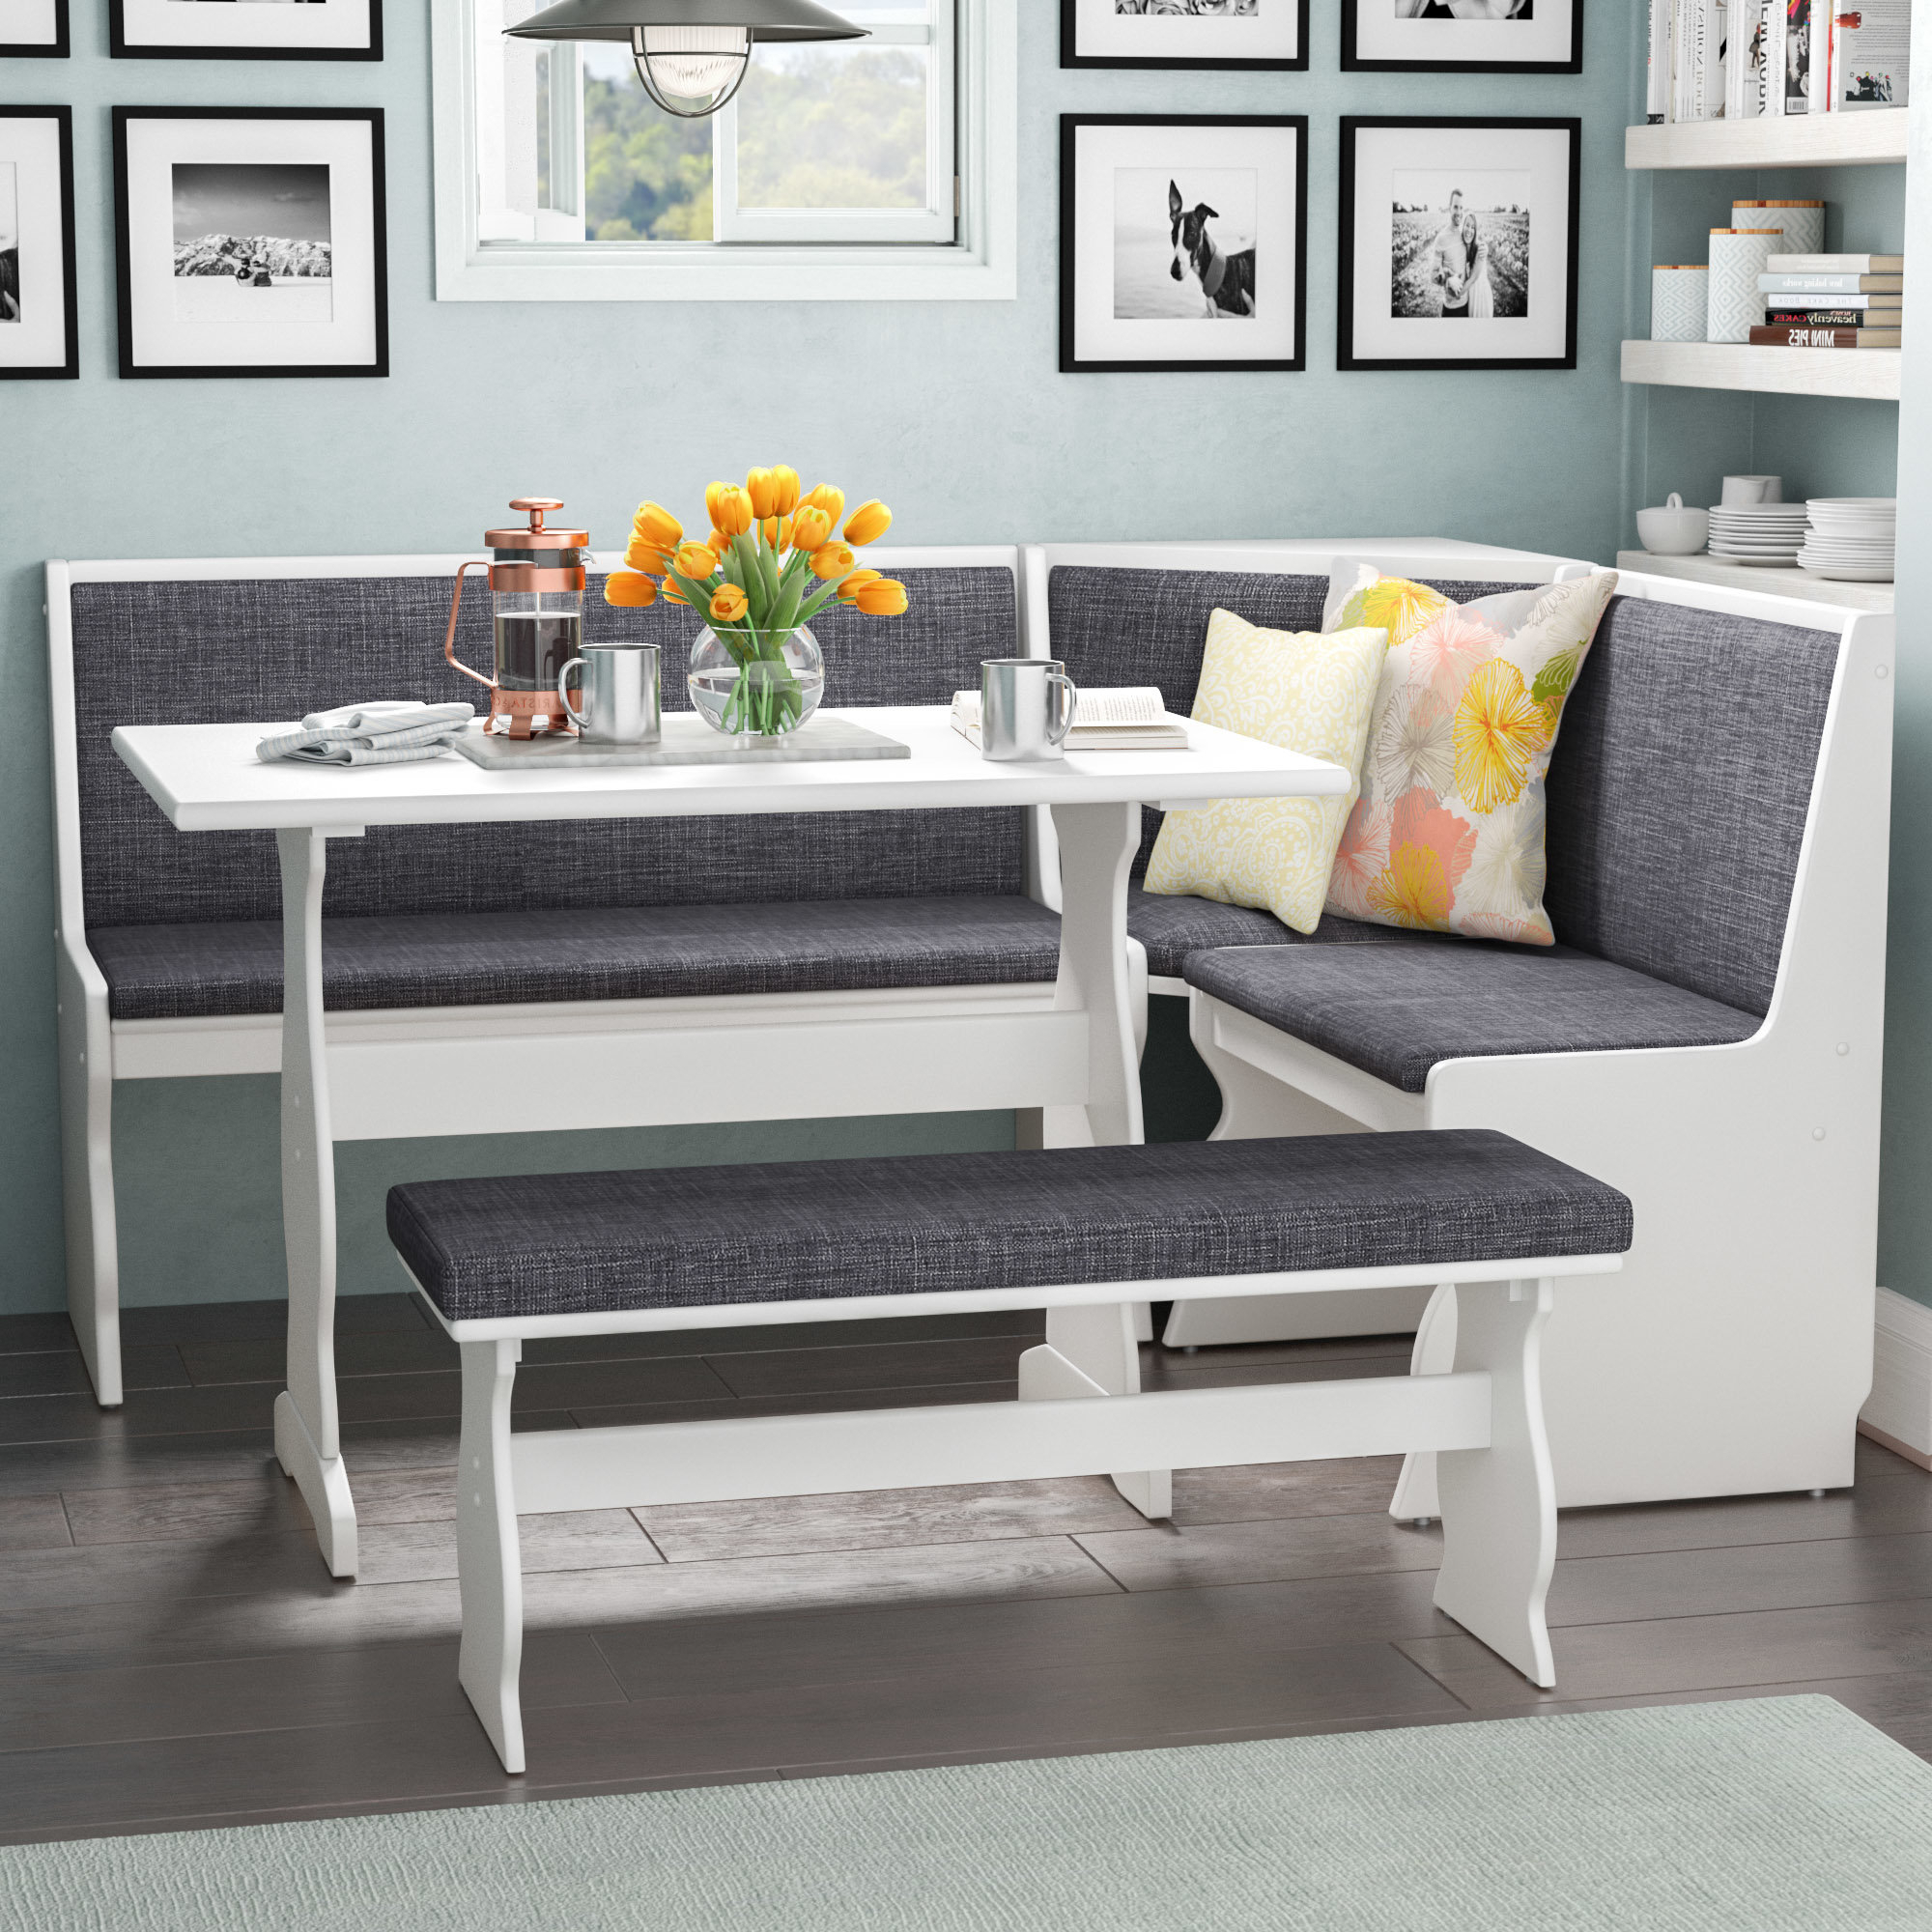 Well Known Olivia 3 Piece Breakfast Nook Dining Set Inside 3 Piece Breakfast Nook Dinning Set (View 2 of 20)